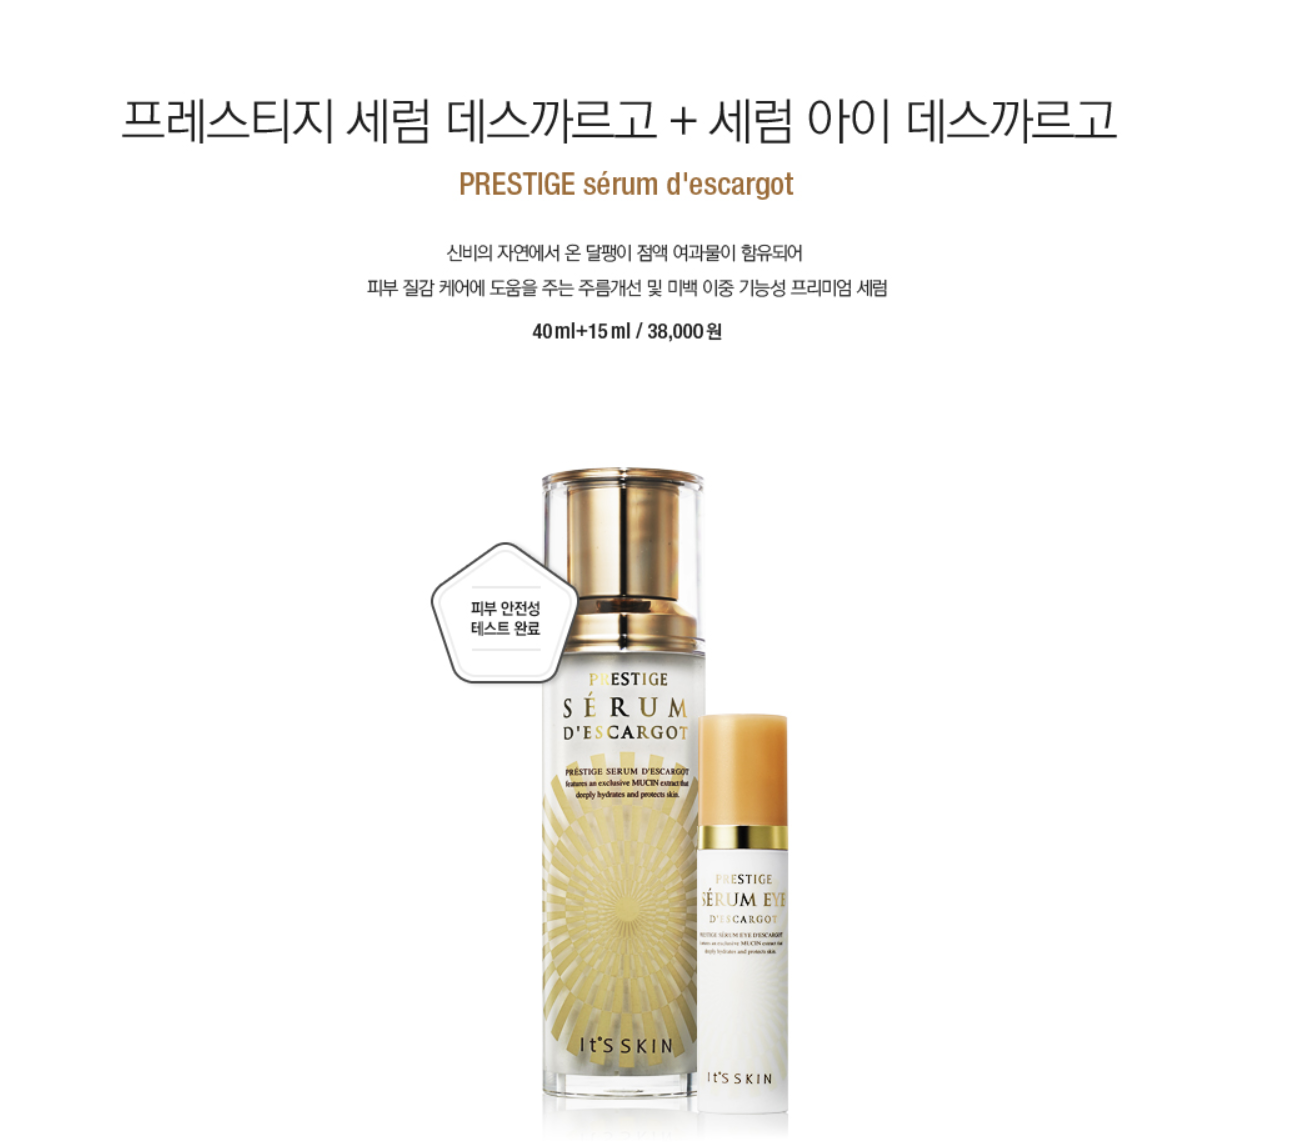 ITS SKIN Prestige Serum D'escargot Set Cosme Hut Australia